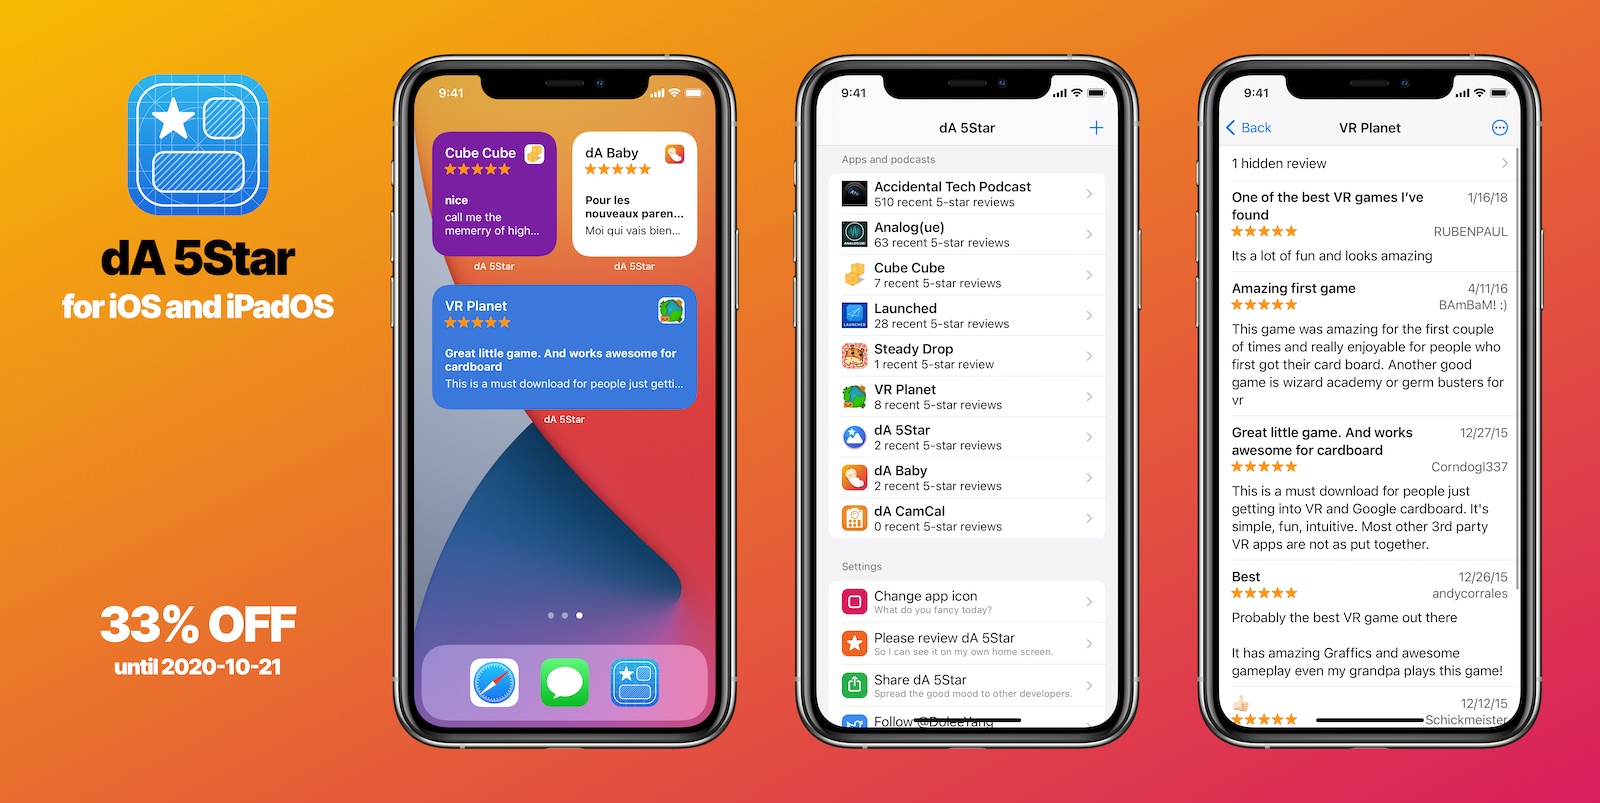 DA 5Star for iOS and iPadOS is Launched